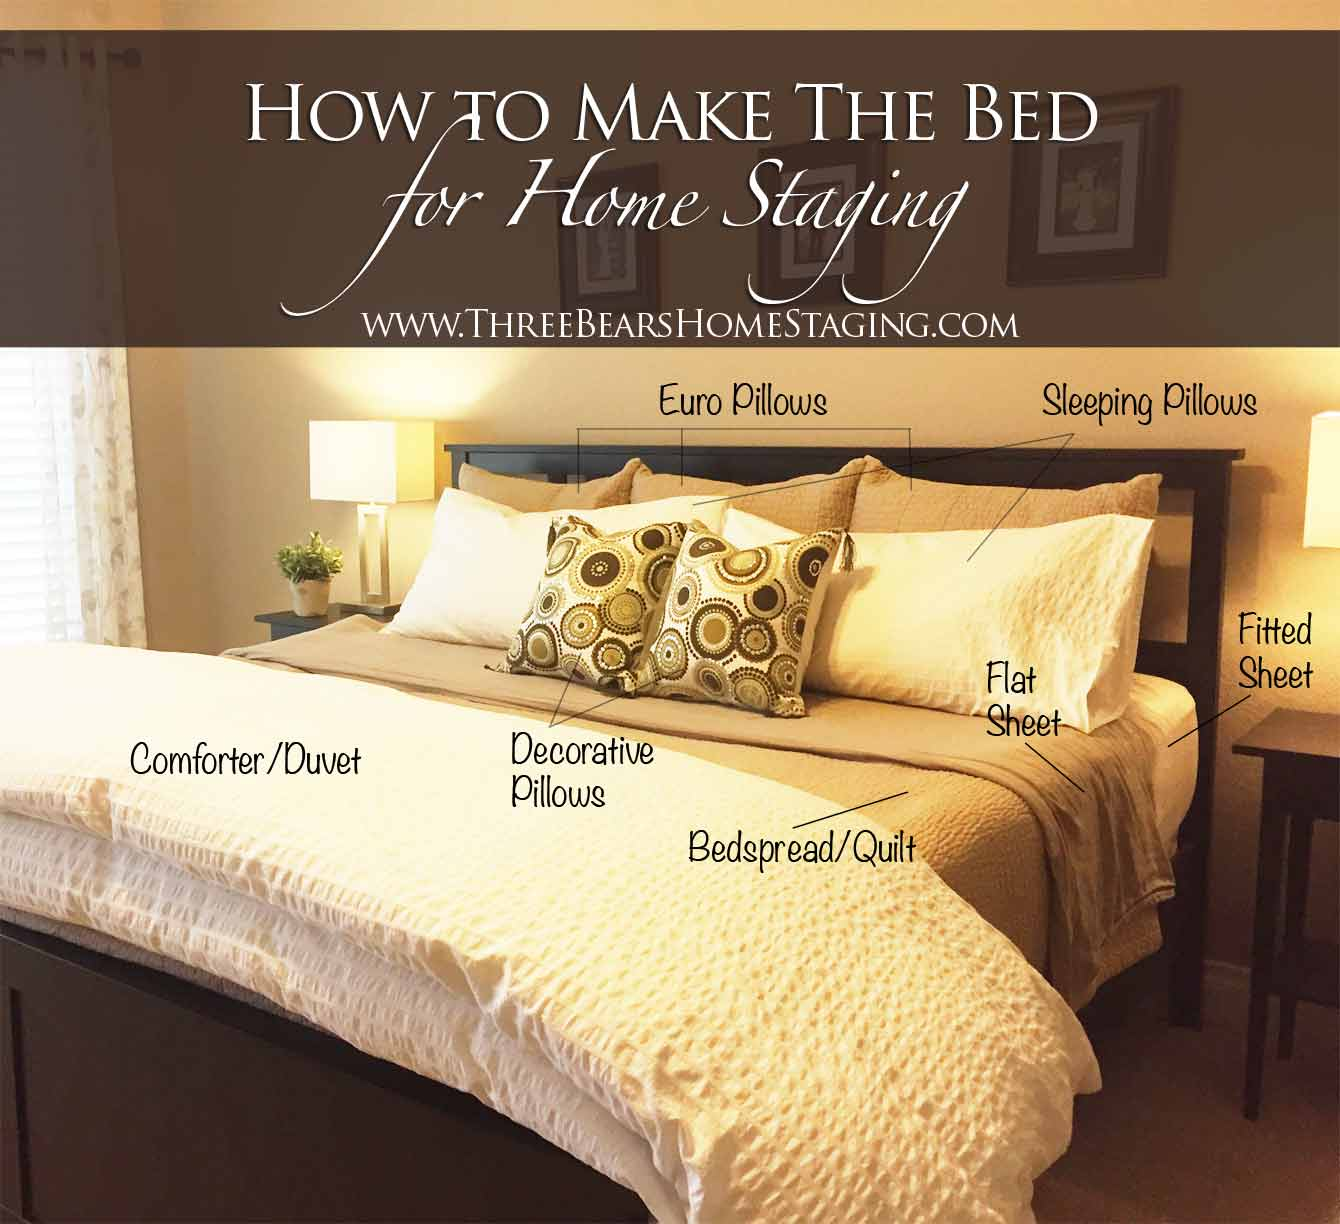 How to Make the Bed for Home Staging bedroom staging  Three Bears